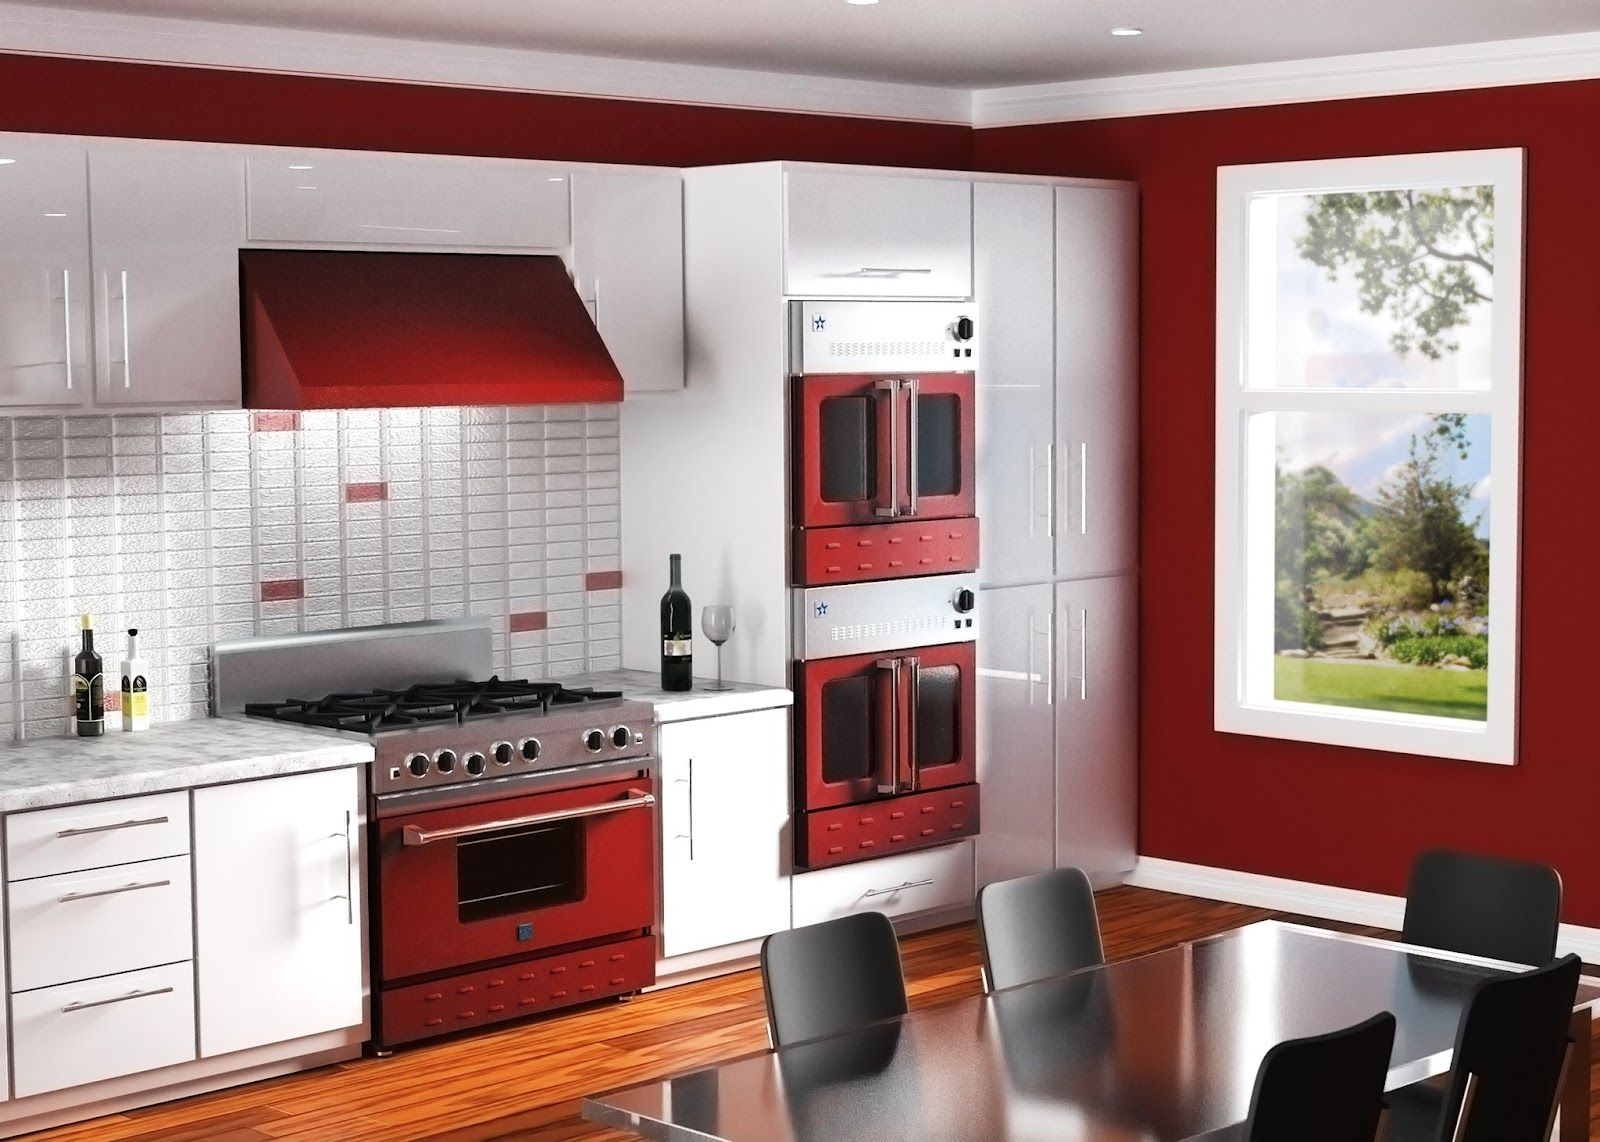 Uncategorized Kitchen With Red Appliances custom bluestar appliances in wine red cooking with color red